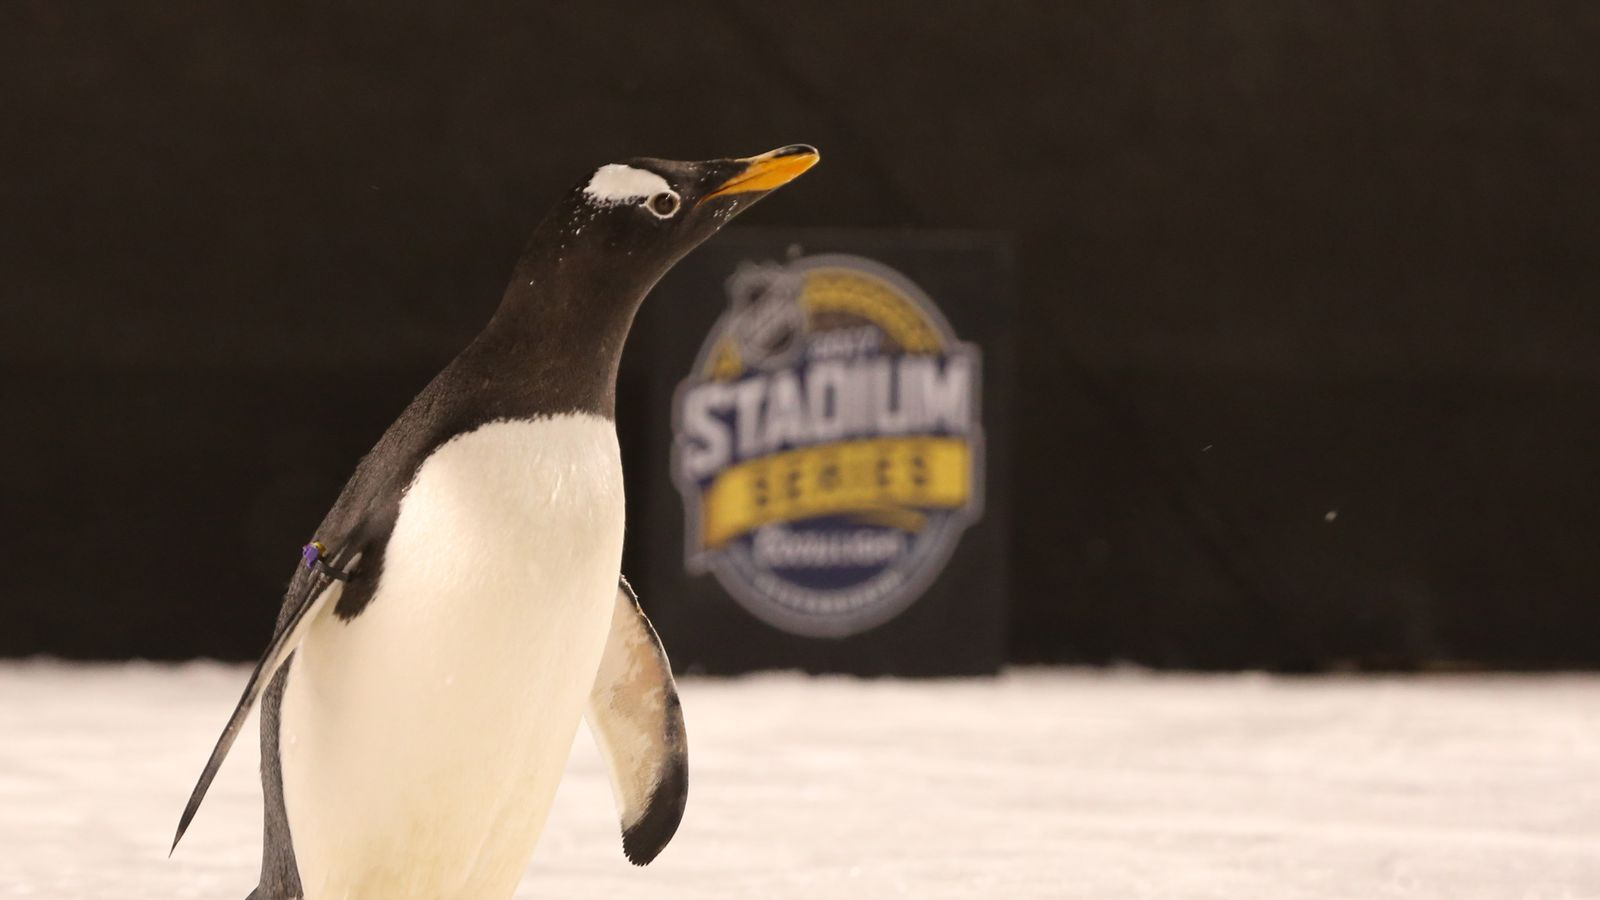 Peta Criticizes Nhl For Using Live Penguins To Promote